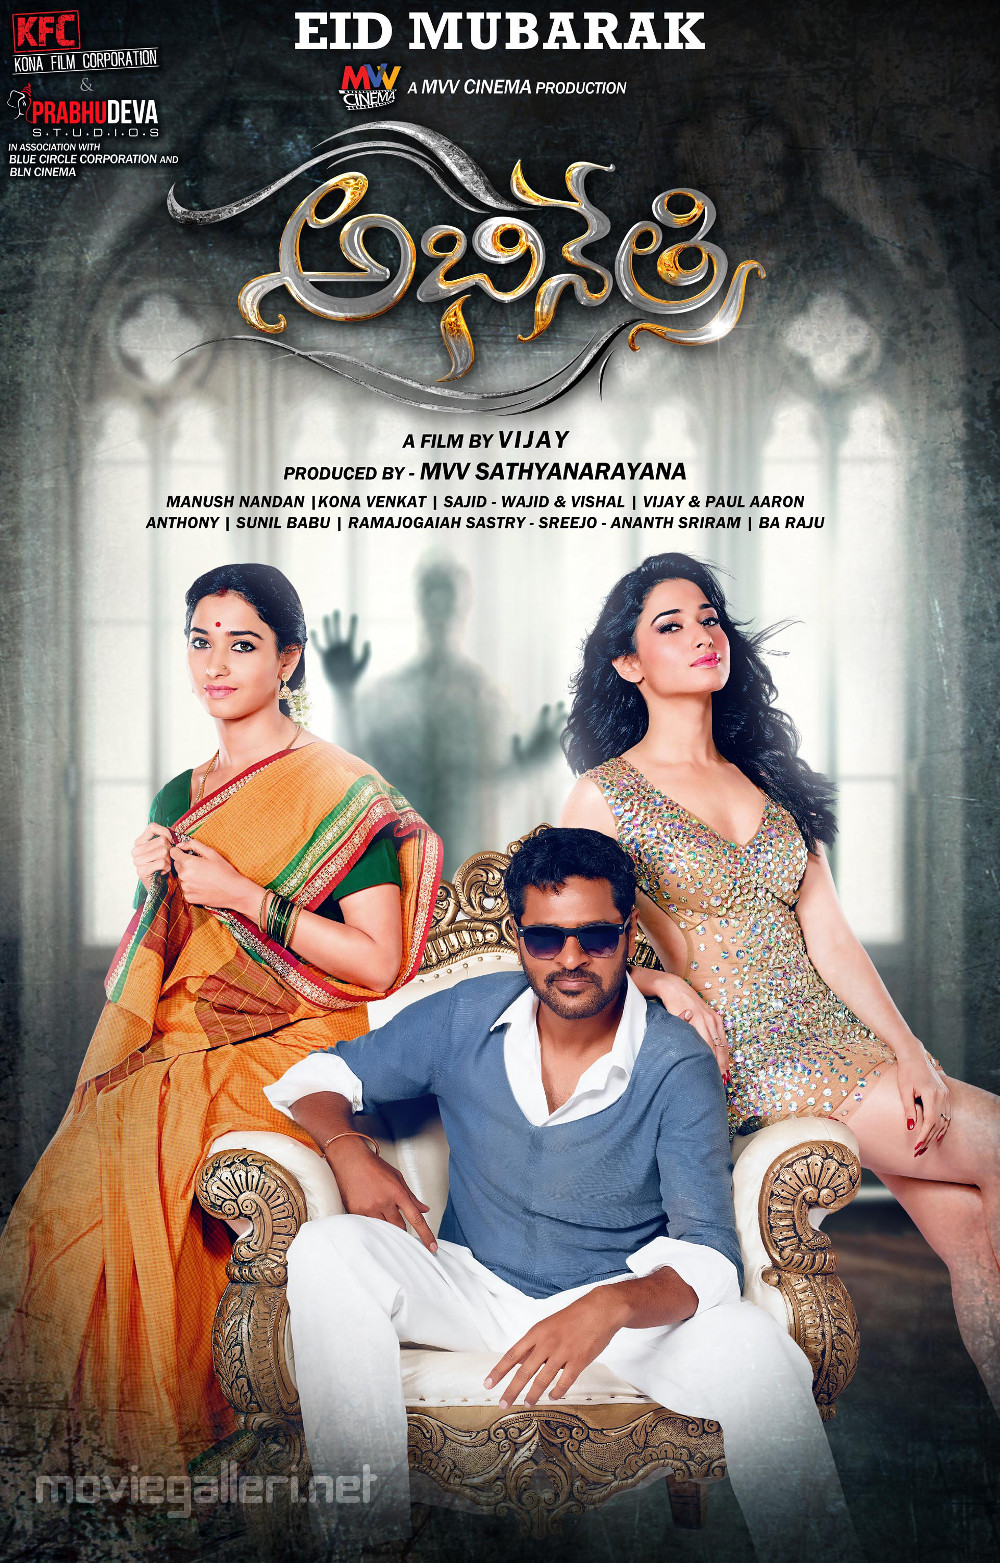 Abhinetri Movie Ramzan Special Eid Mubarak Posters New Movie Posters